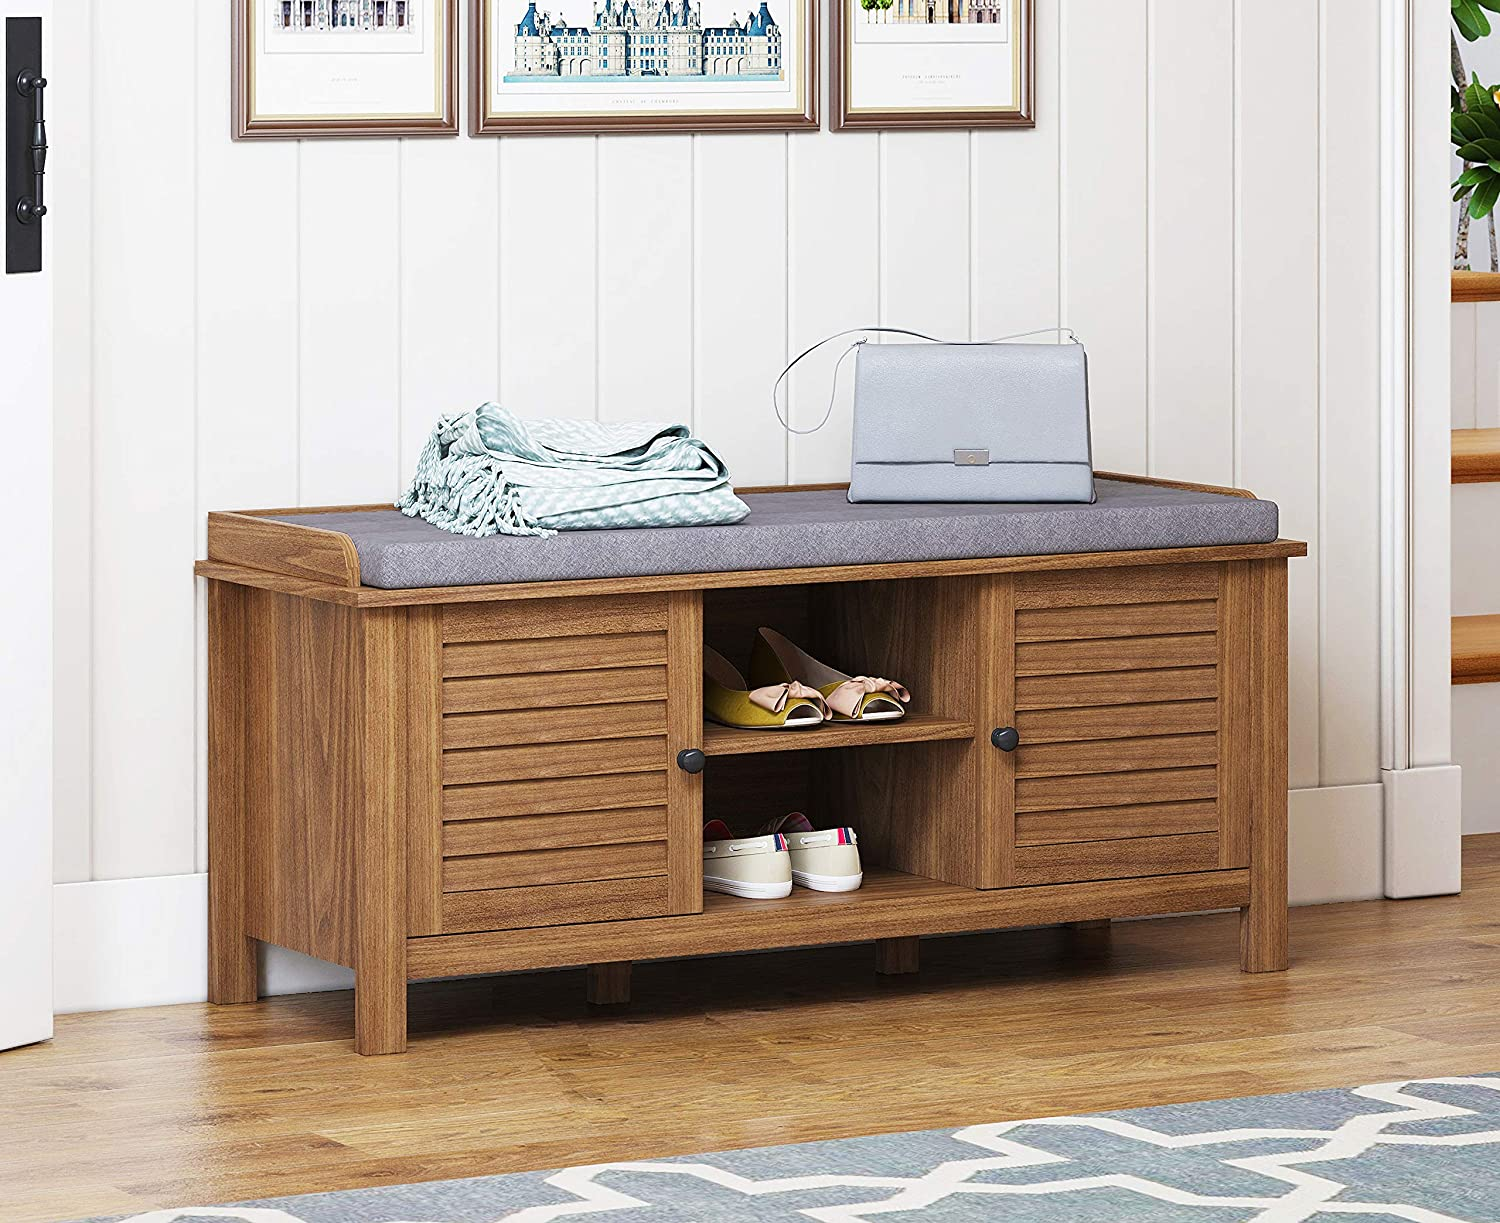 Spirich Home Entryway Benches with Storage and Cushion, Large Entryway Storage Bench with Adjustable Shelf and Louvre Door